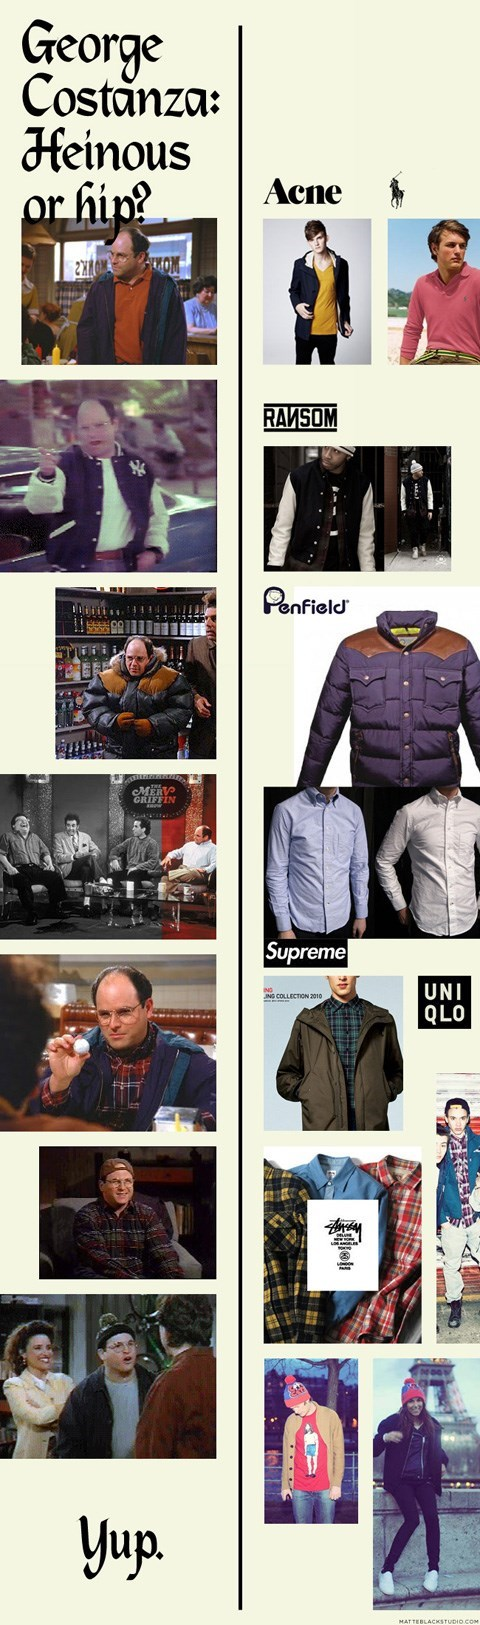 Is George Costanza the Pioneer of Hipster Fashion?